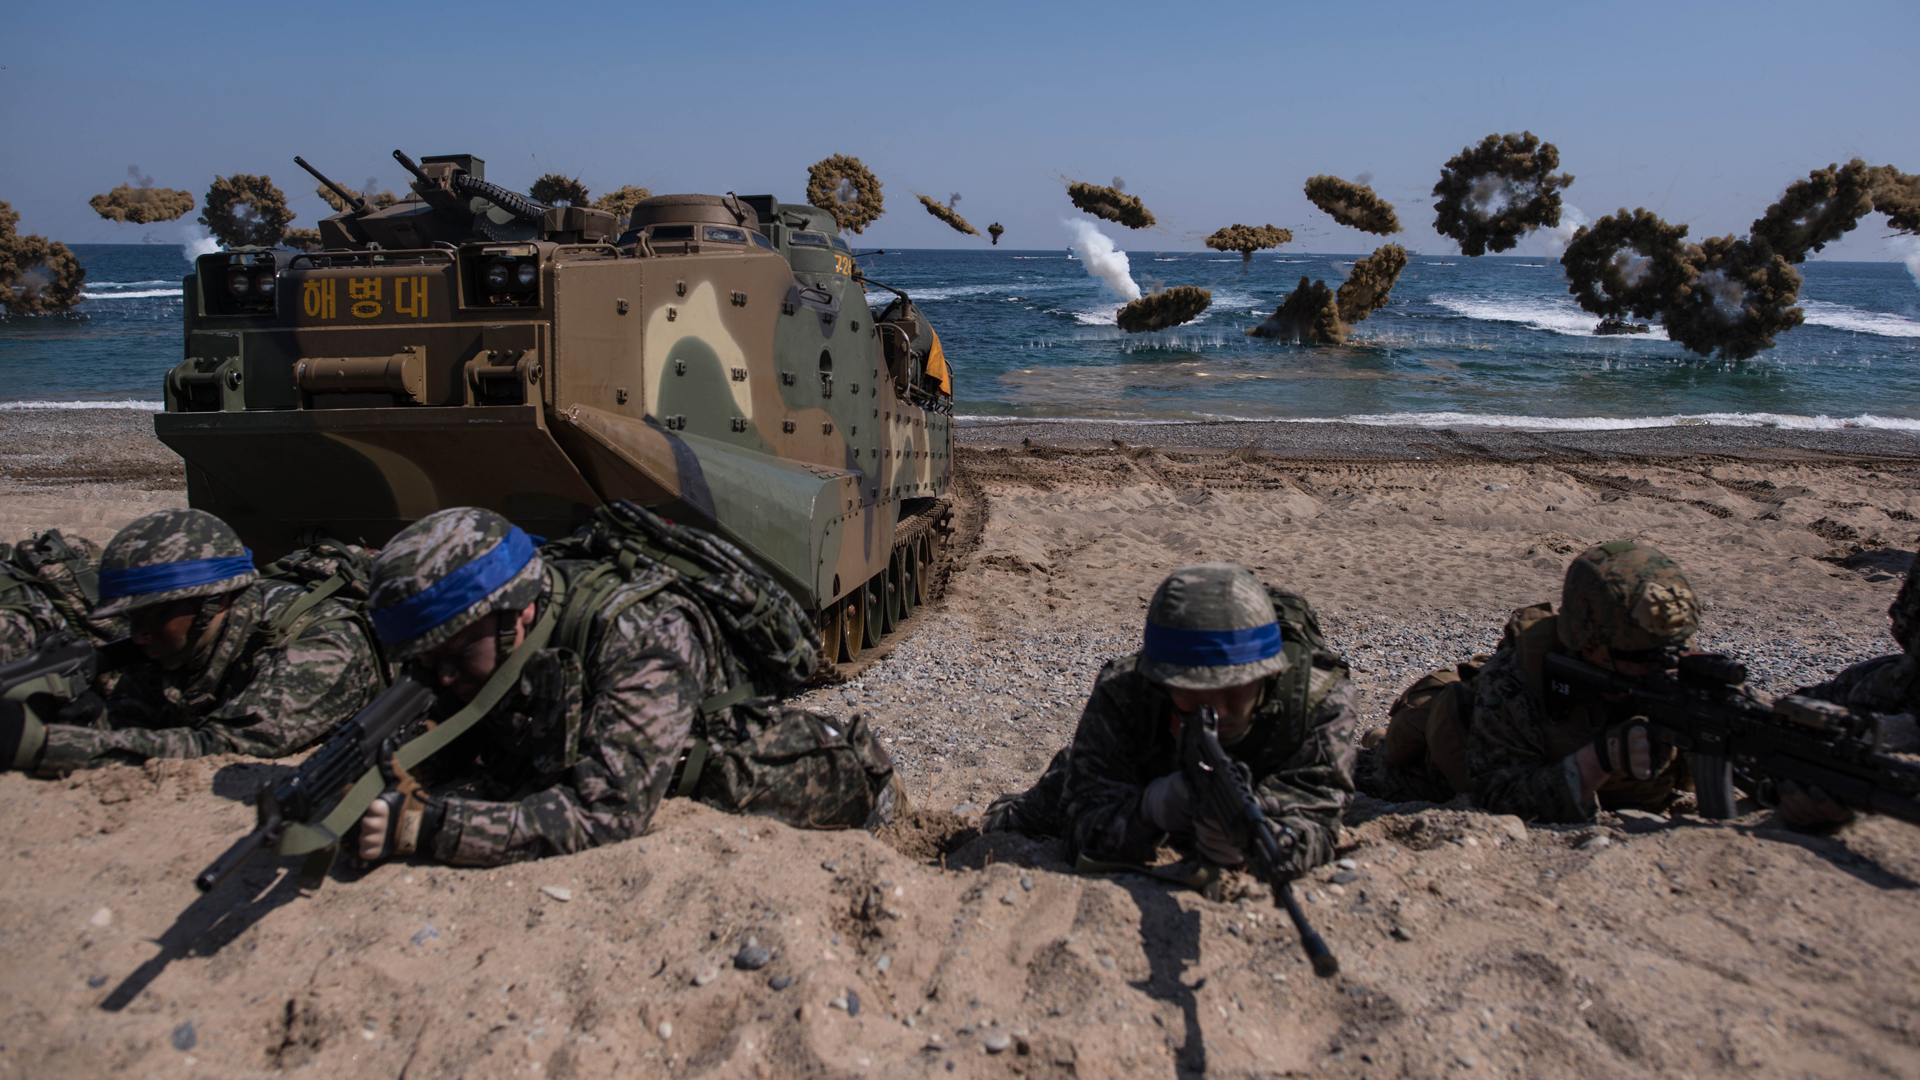 U.S. and South Korean soldiers take a position during an annual joint military landing exercise in Pohang, on South Korea's southeast coast, on March 12, 2016. (Credit: ED JONES/AFP/Getty Images)